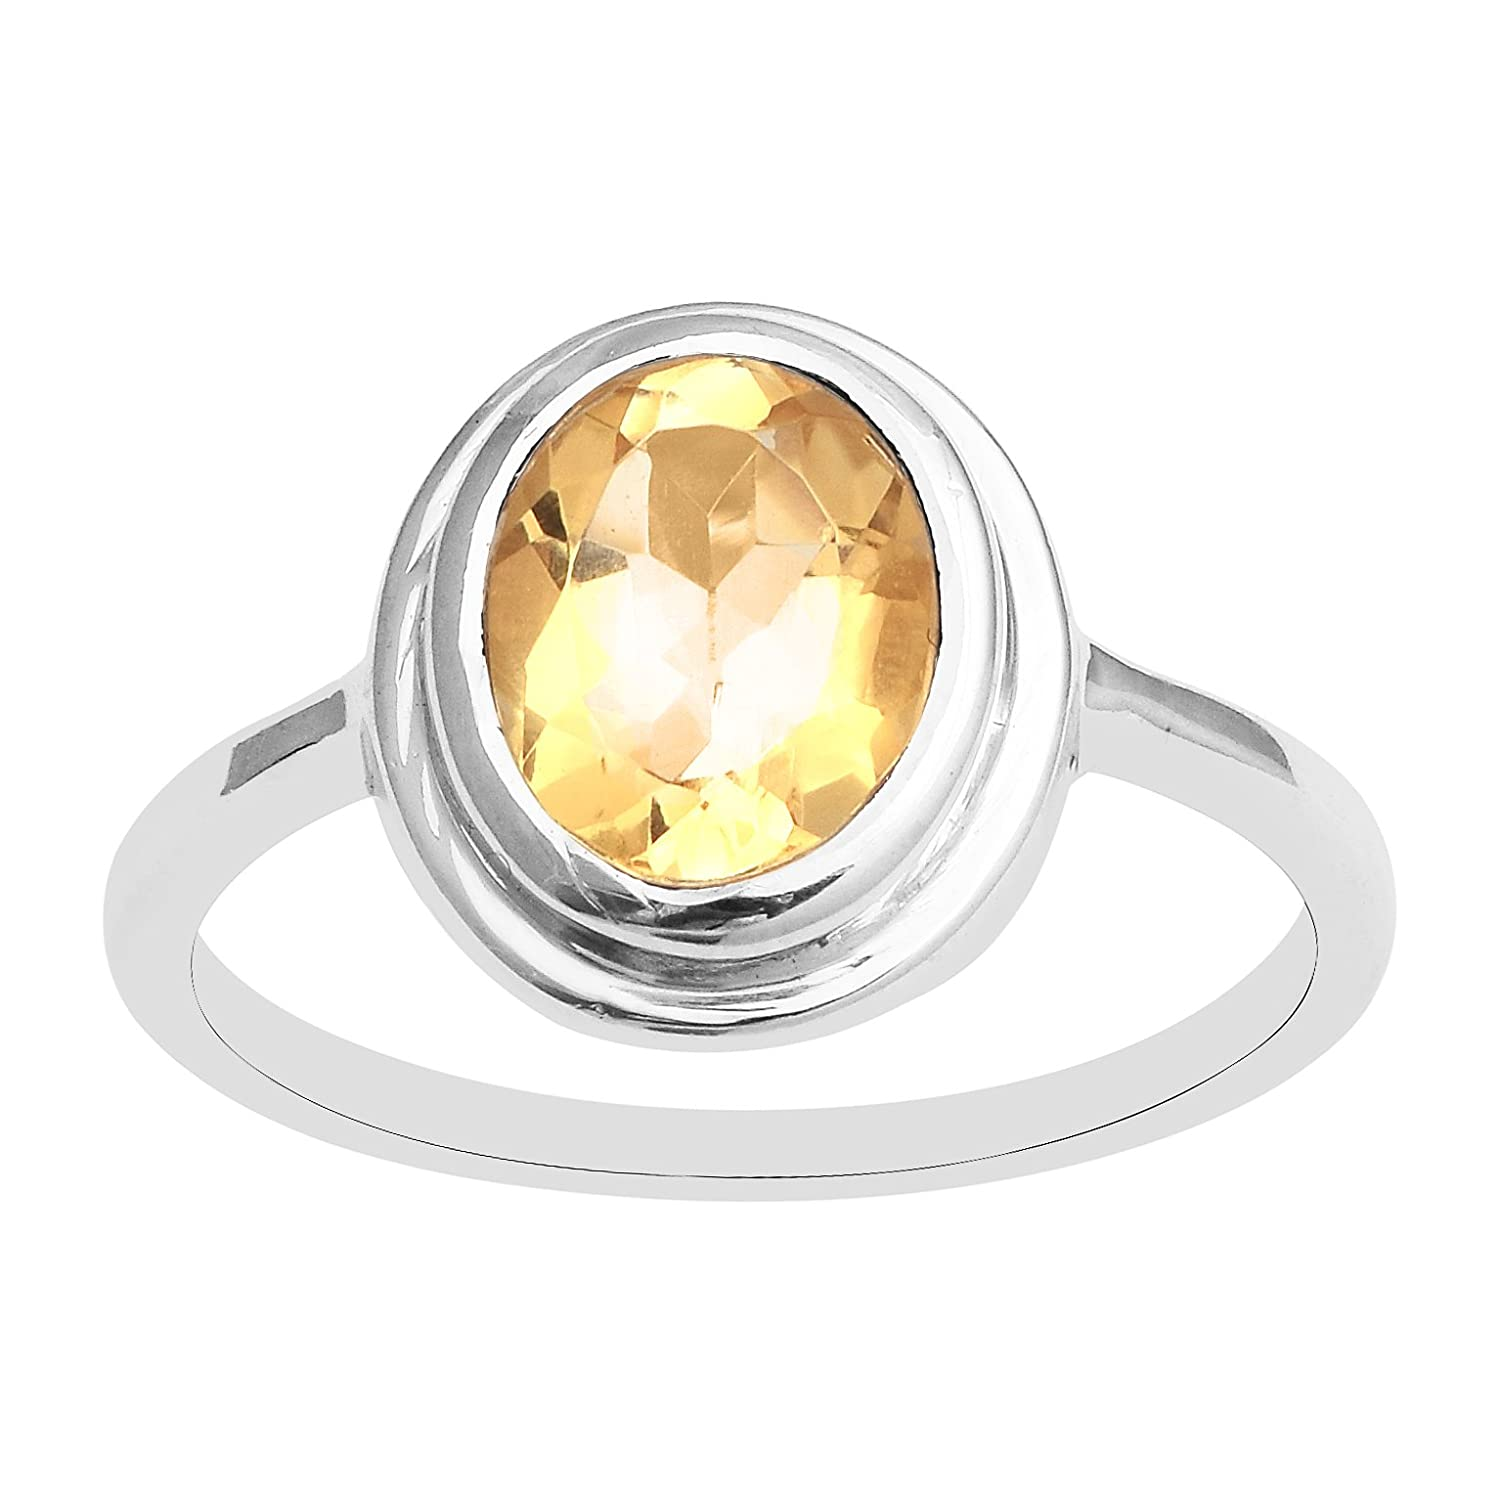 Set of 5 PC Citrine Jewelry Set Pendant Ring Earring Chain 925 Silver Wedding Ring Size-7